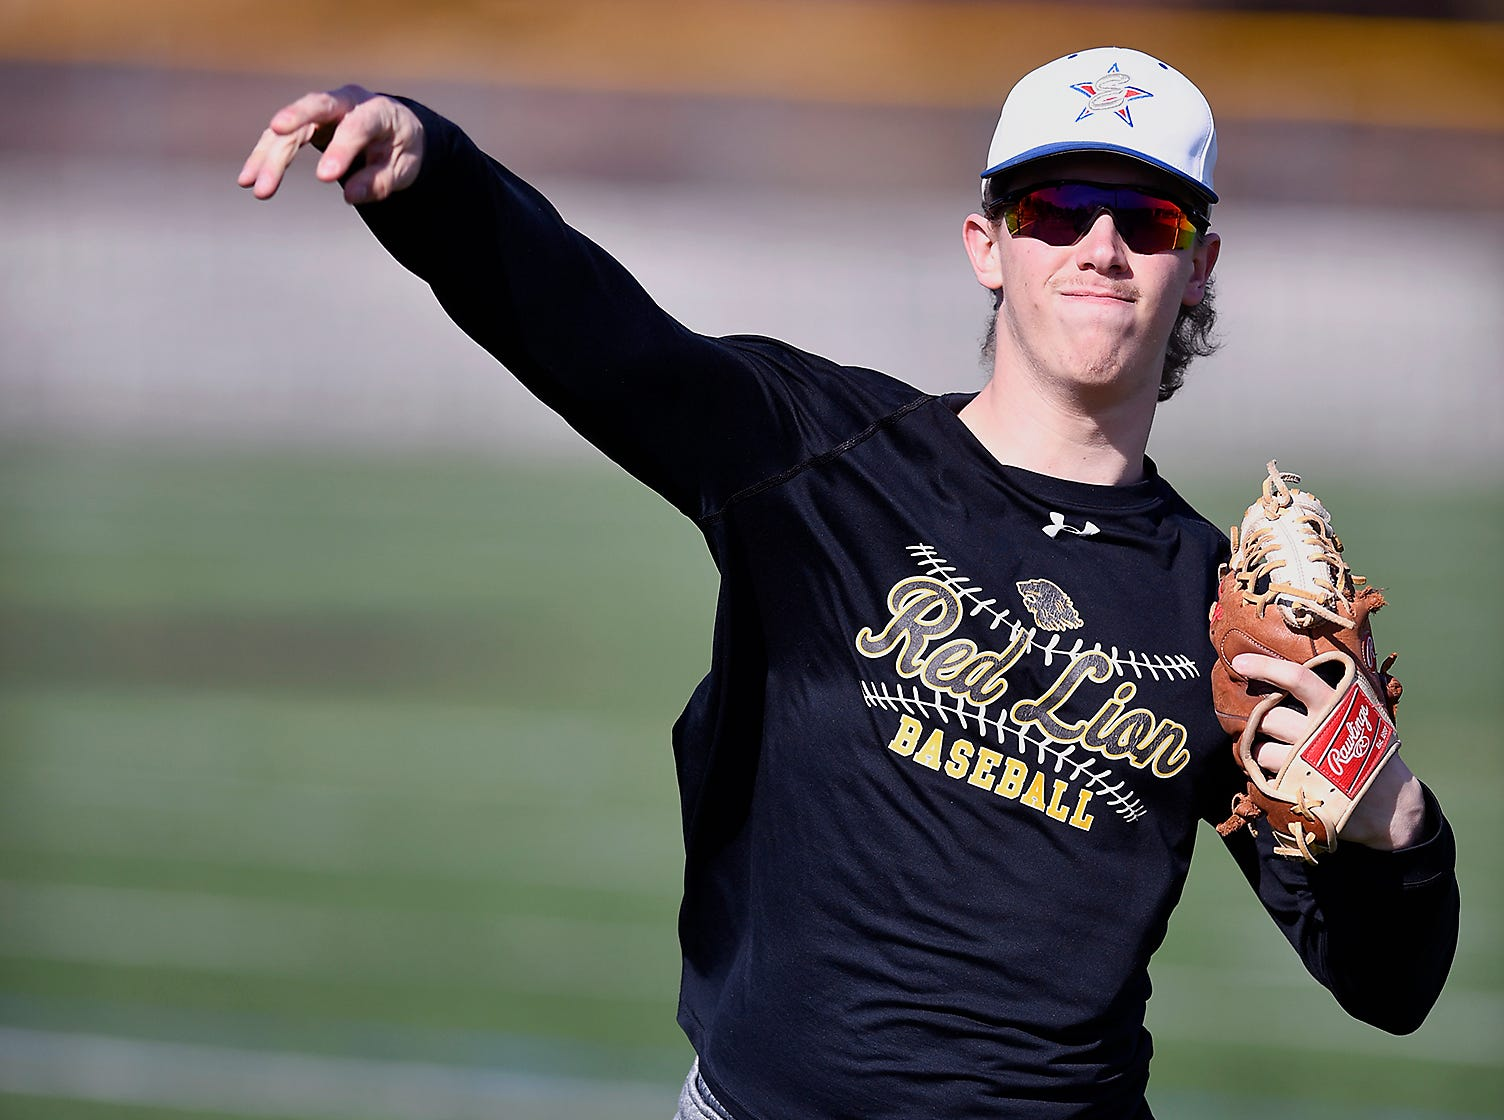 Red Lion High School pitching ace C.J. Czerwinski warms up during practice, Monday, March 11, 2019John A. Pavoncello photo